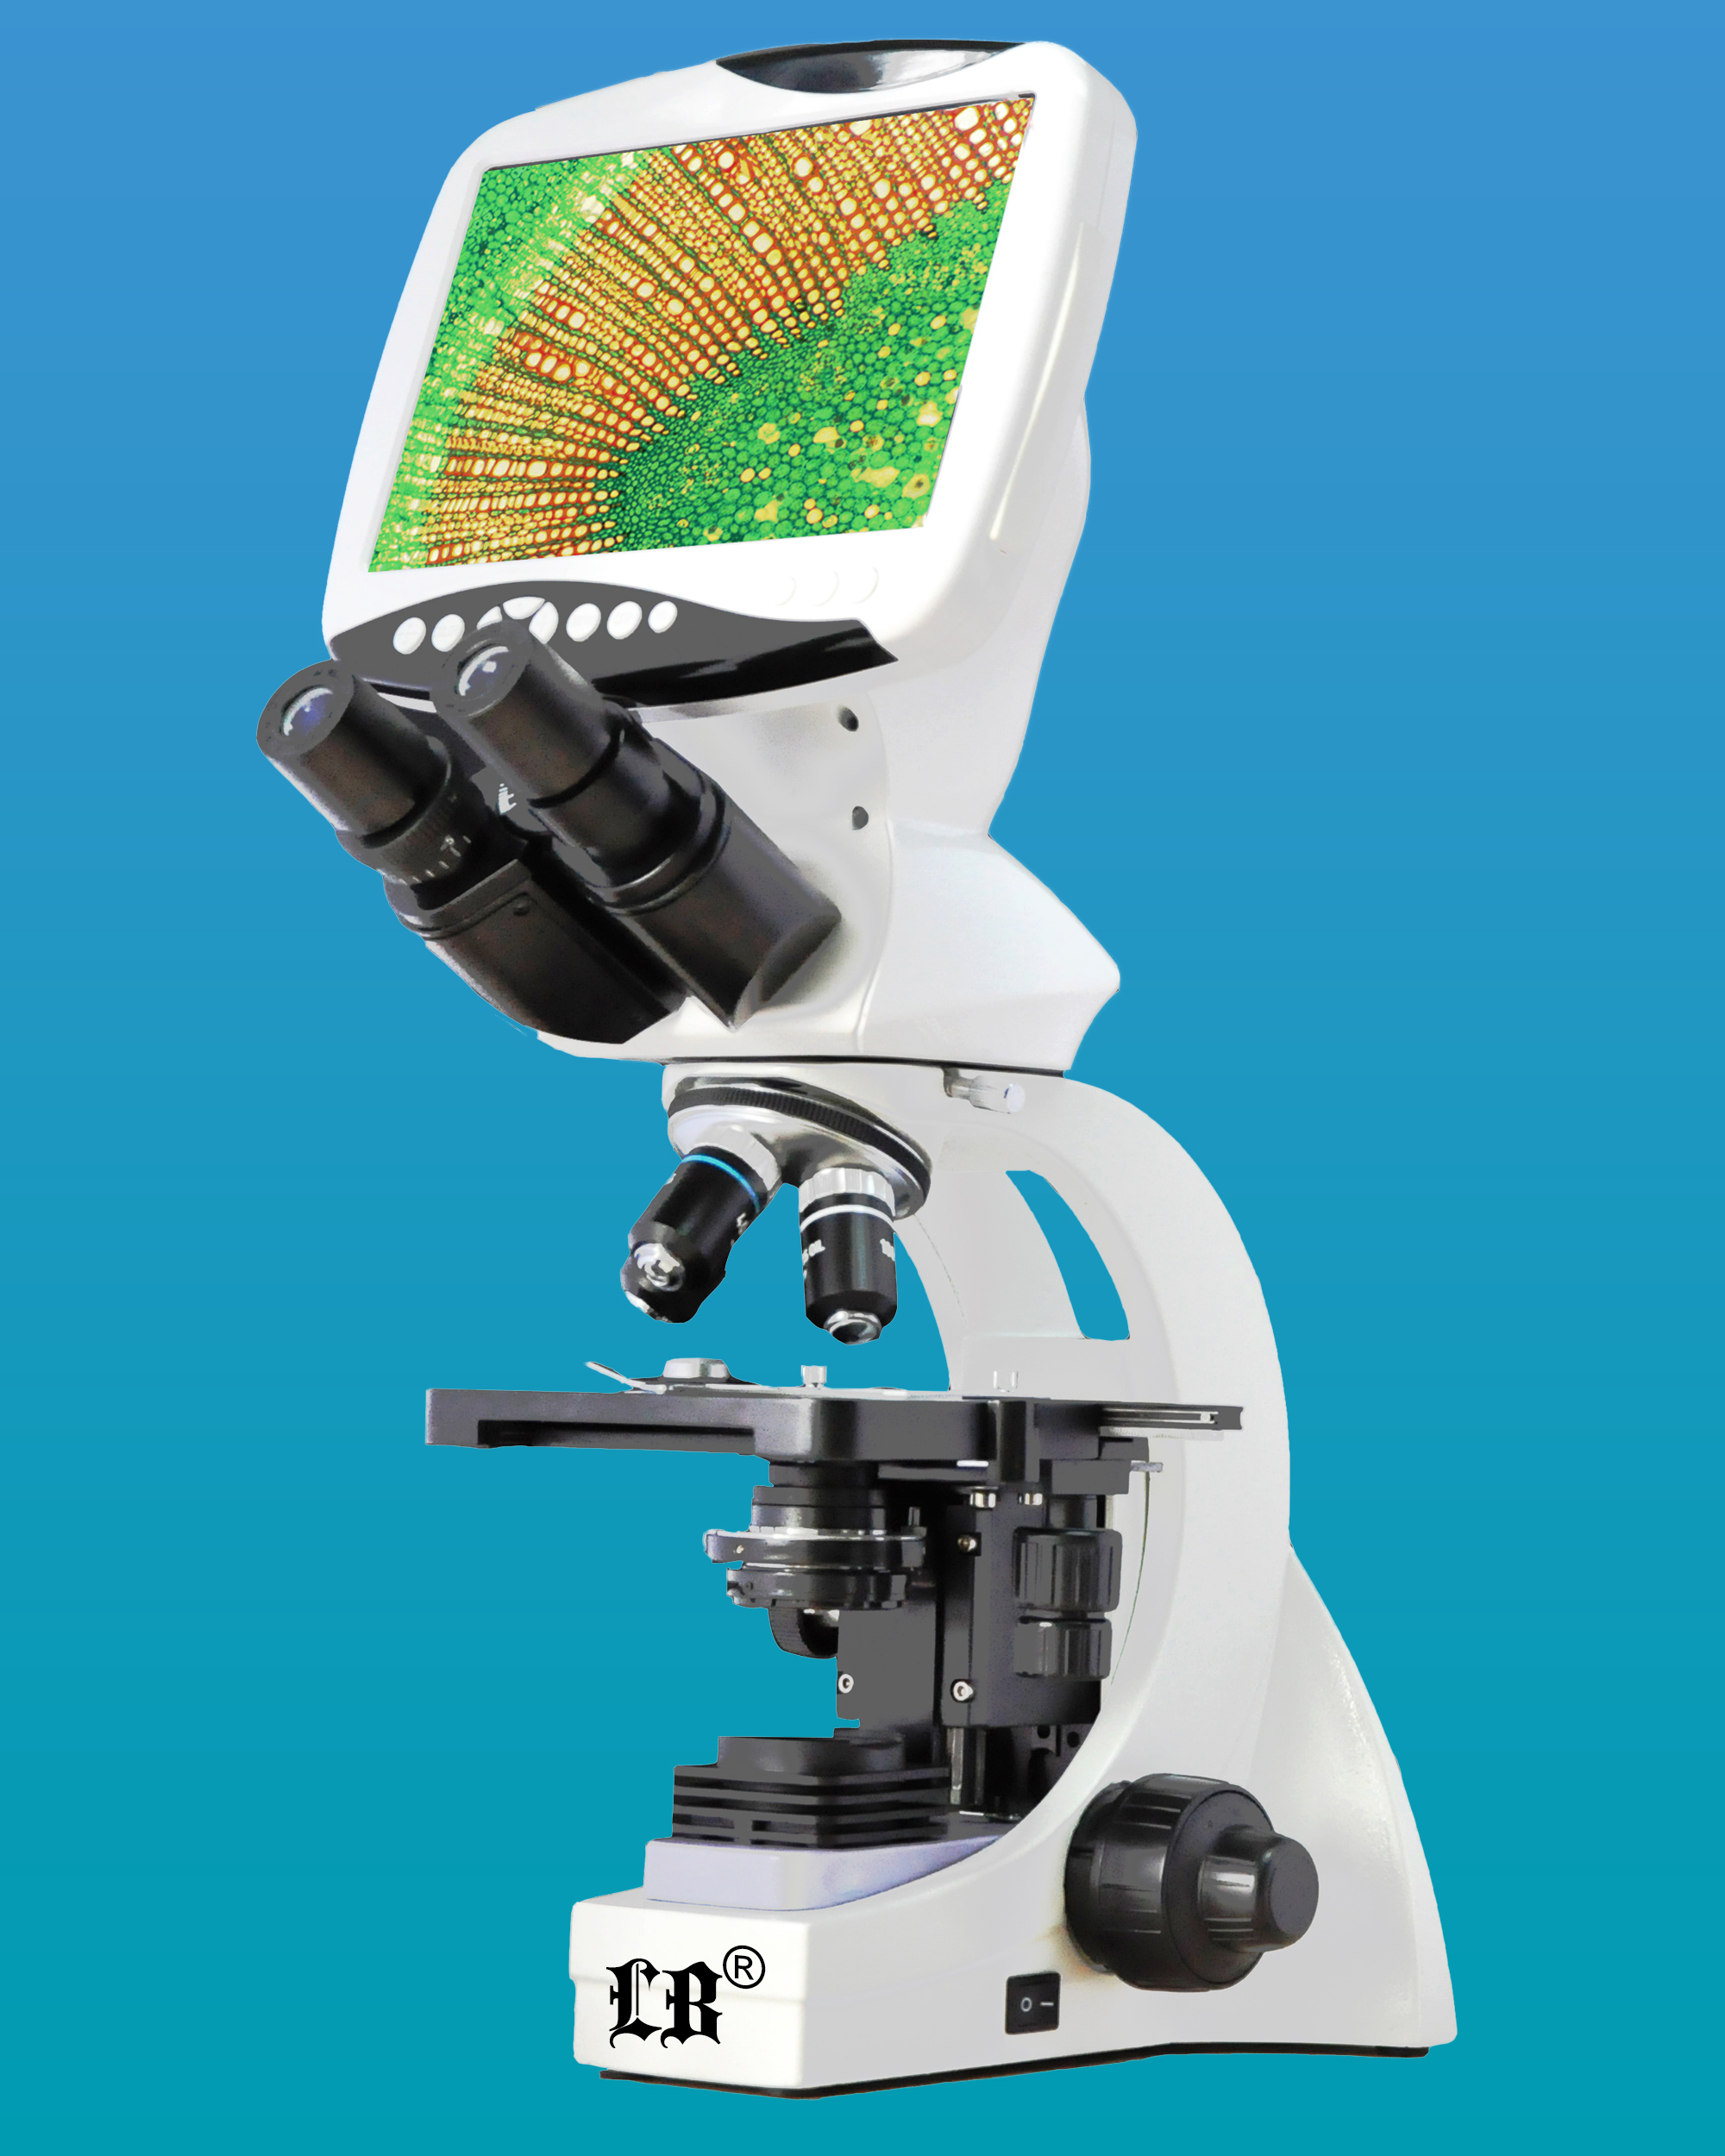 [LB-1260] Compound LCD Digital Biological Microscope w/ Extra Wide Field & Infinity Plan Optical System  (Infinity Color Corrected System) (12.0MP)